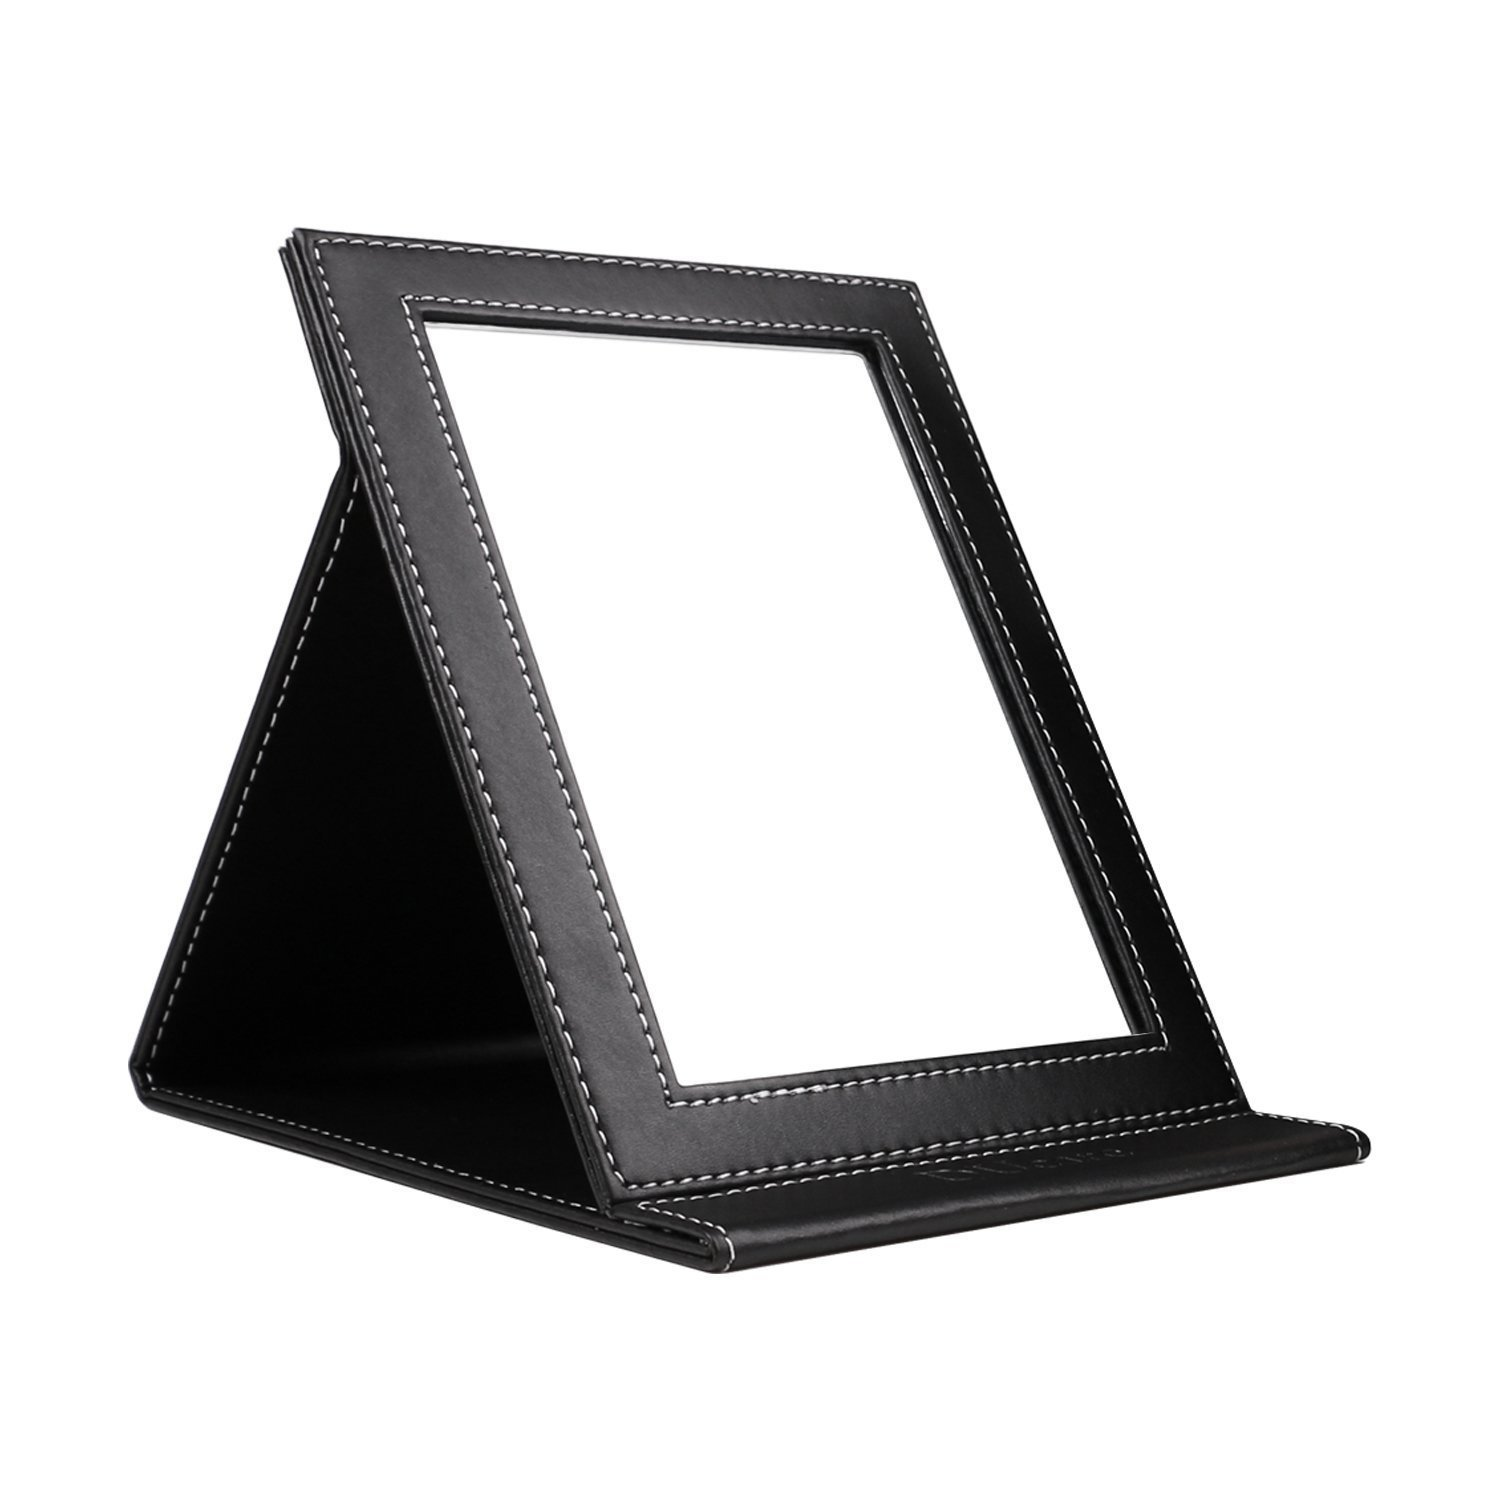 Ducare Portable Folding Vanity Mirror With Stand Large Ebay